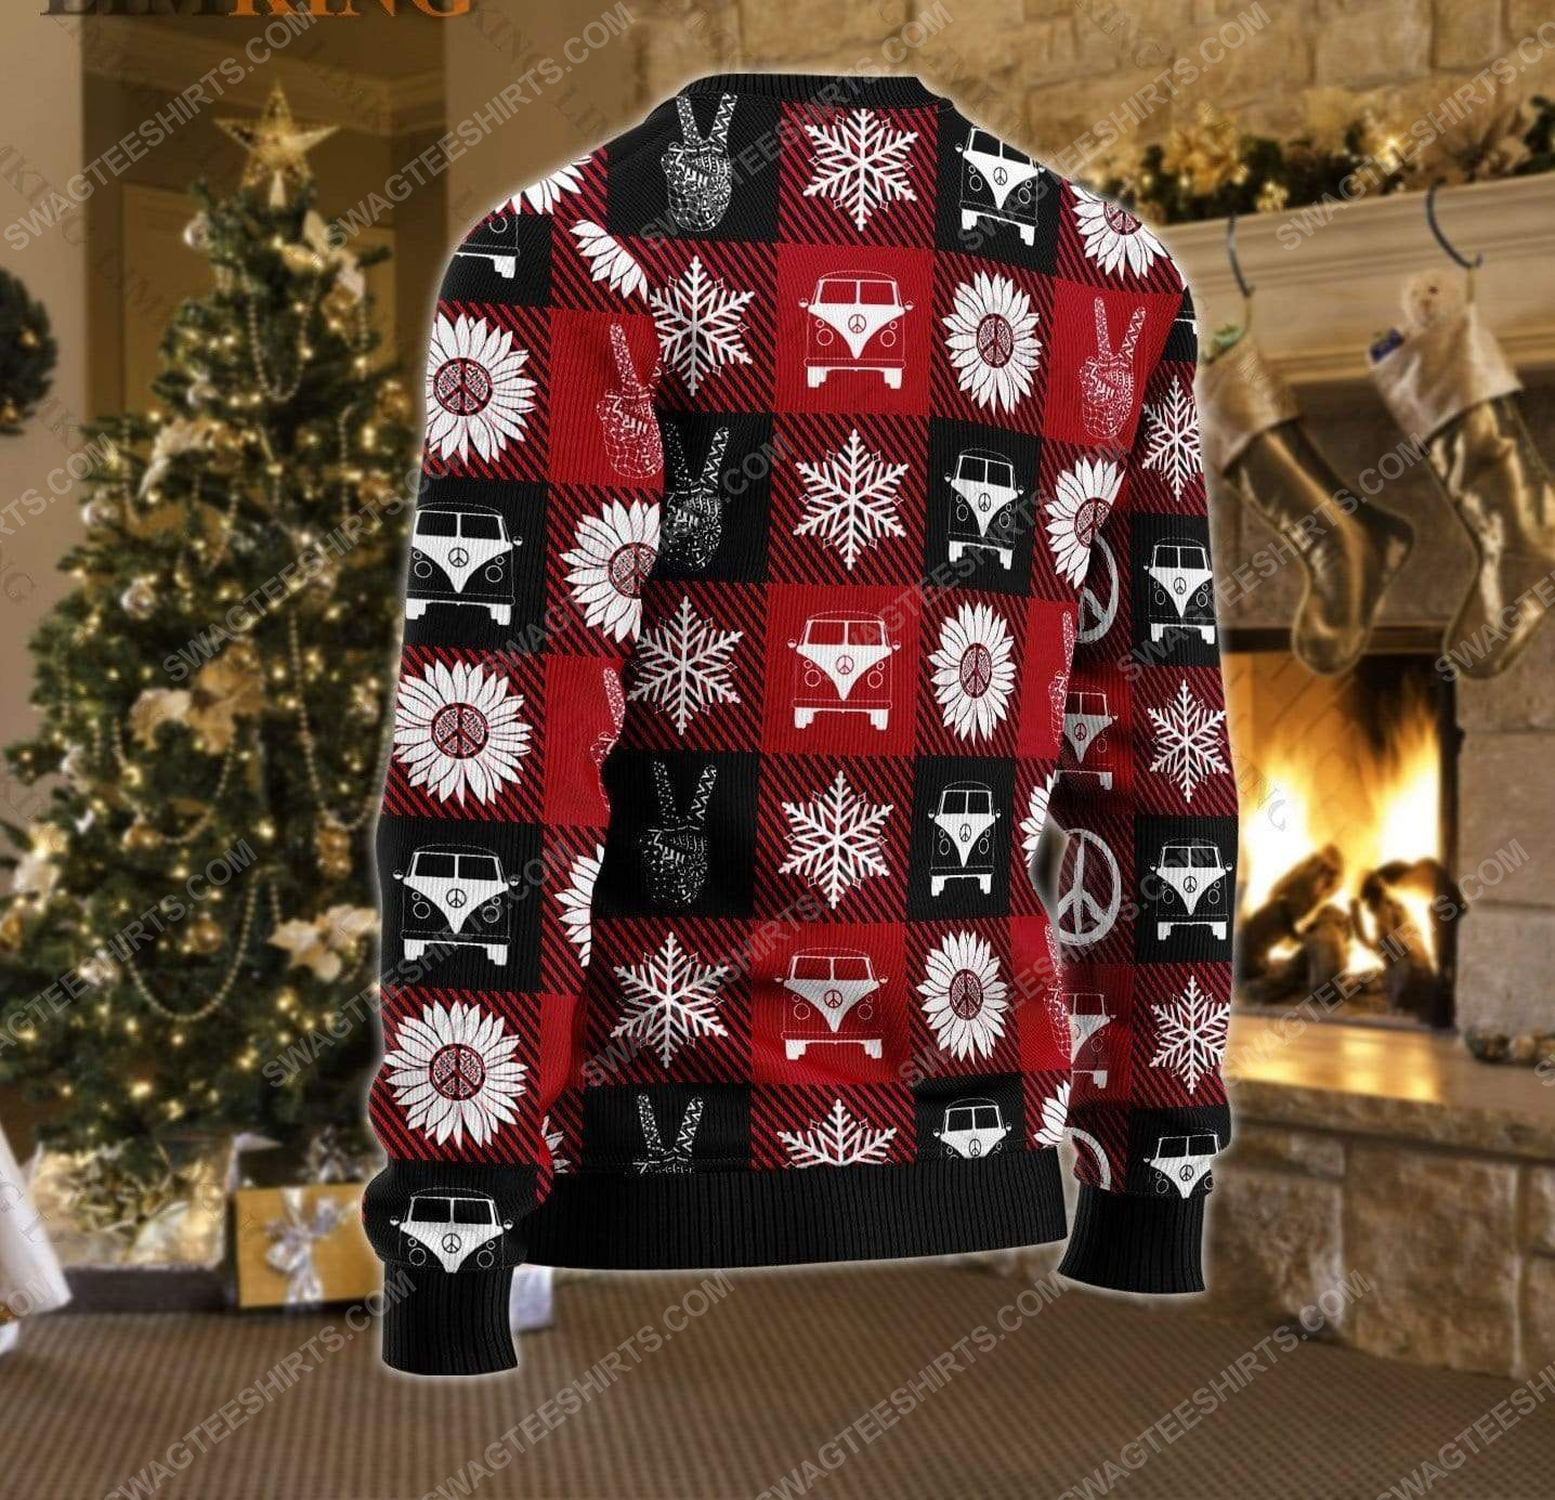 Hippie peace love ugly christmas sweater 3 - Copy